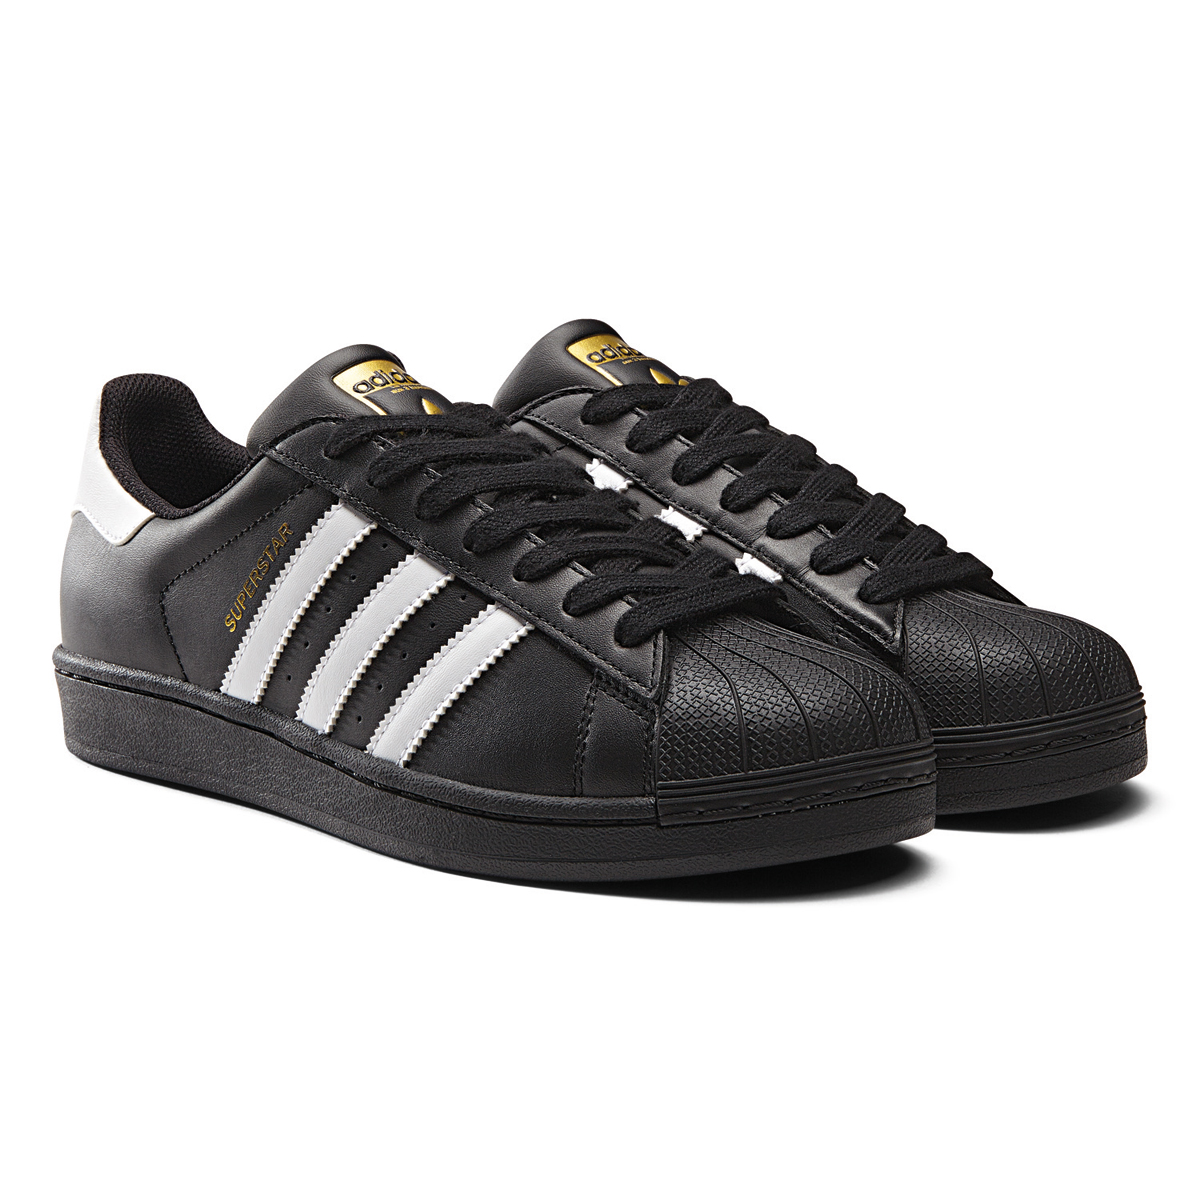 Adidas Di StileCon SuperstarUn'icona Tante NovitàIn Originals 5RjL4A